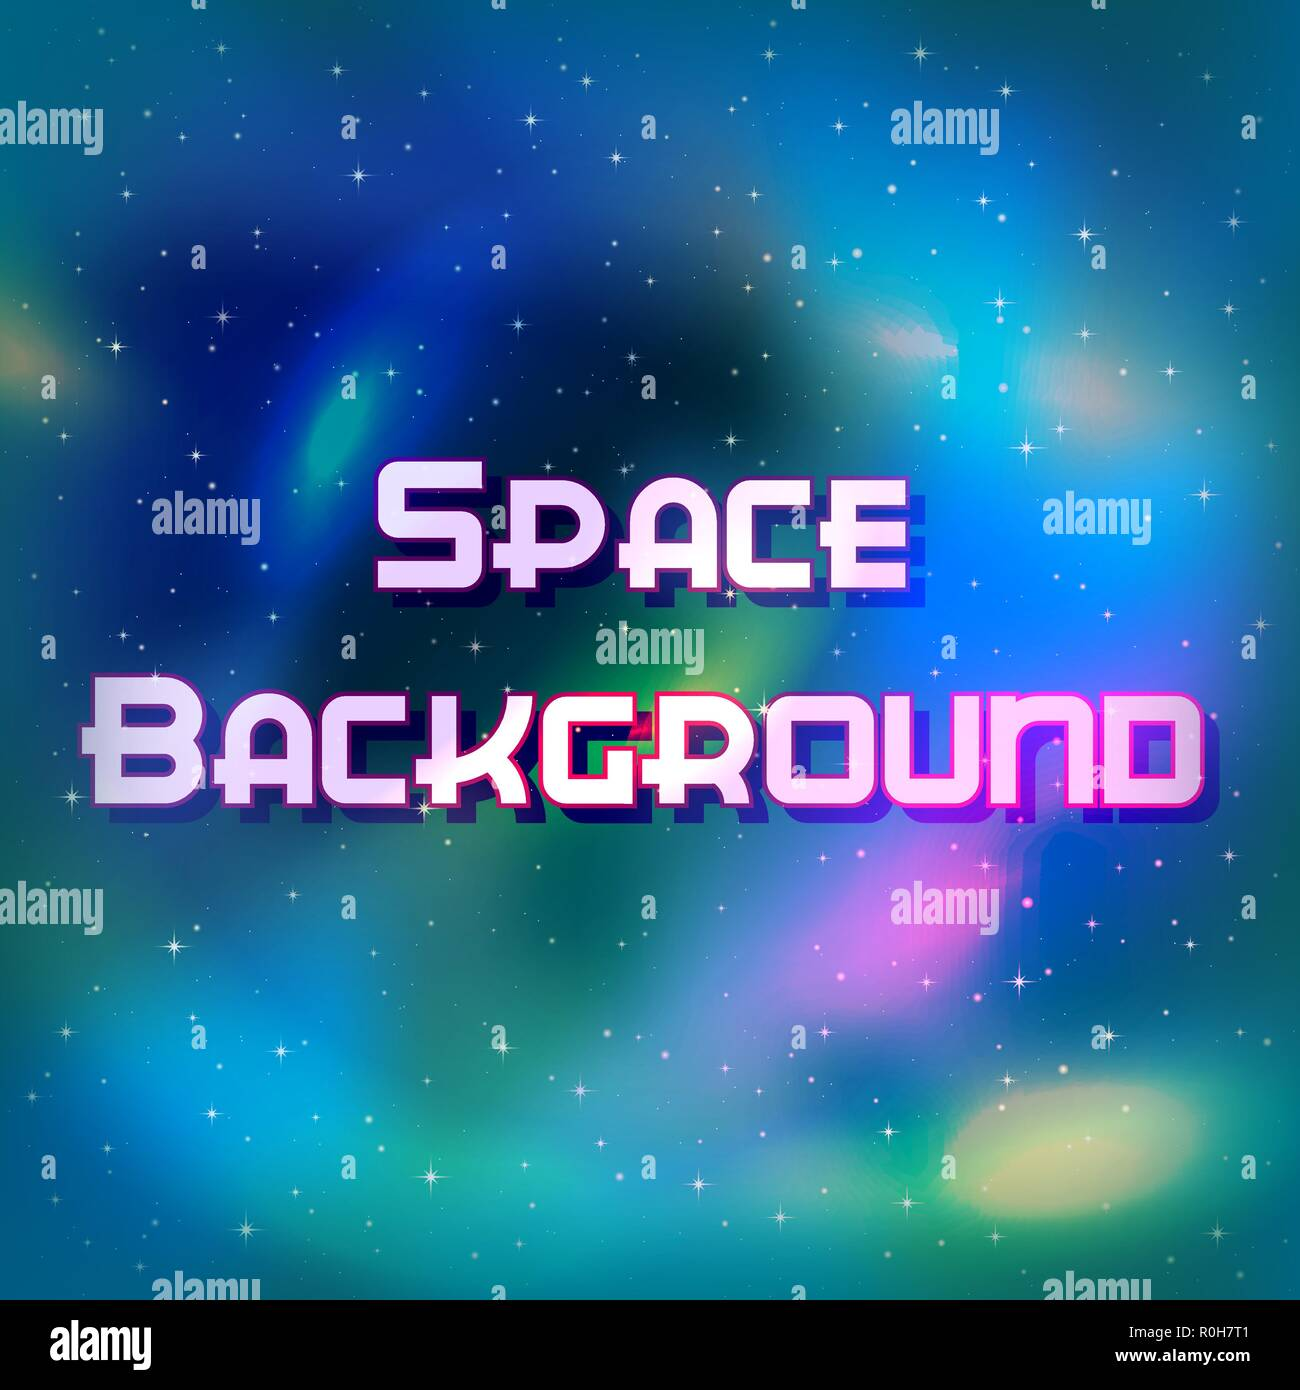 Space Background with Stars - Stock Vector